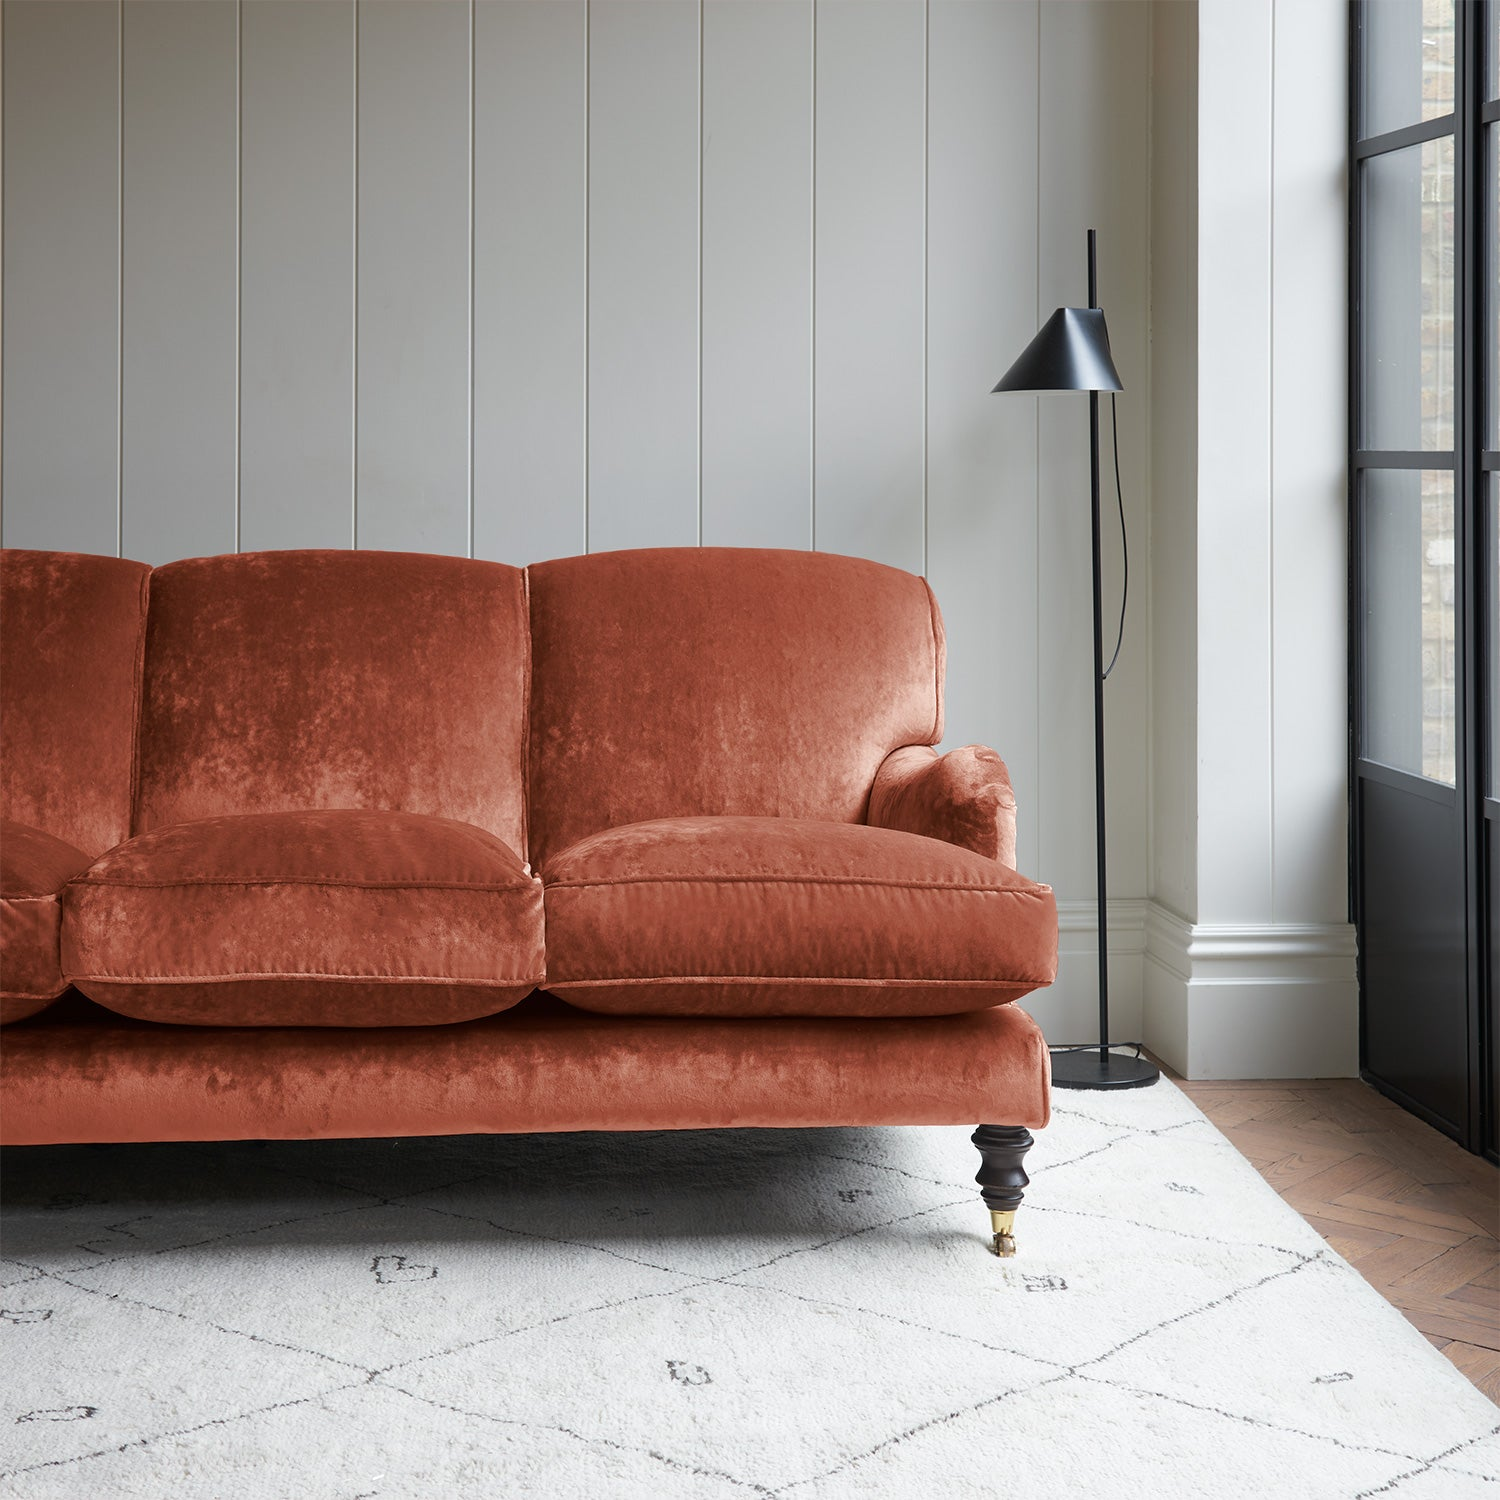 Velvet sofa in a orange crushed velvet upholstery fabric